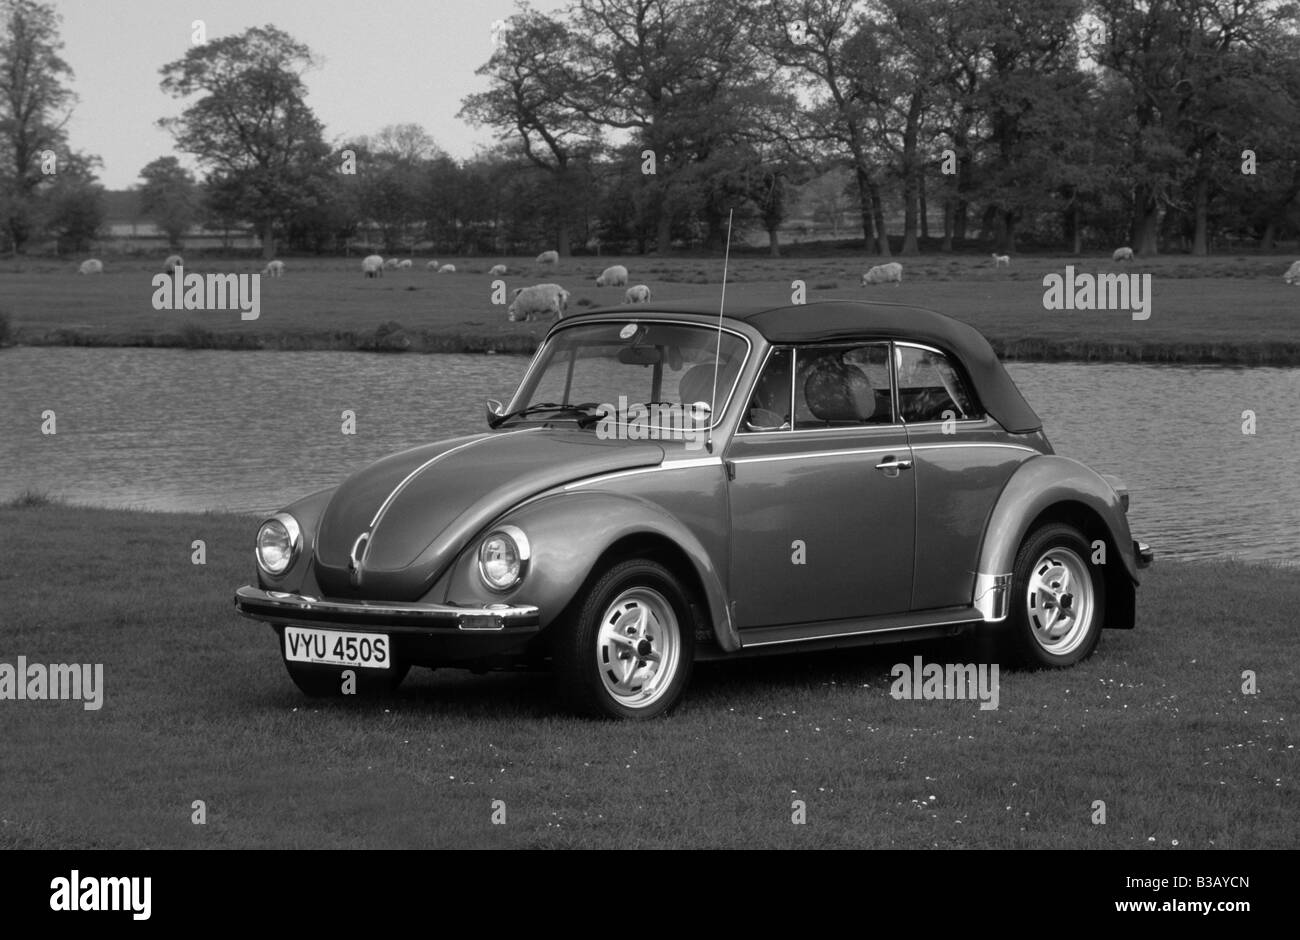 hight resolution of volkswagen beetle 1303 cabriolet of 1978 stock image